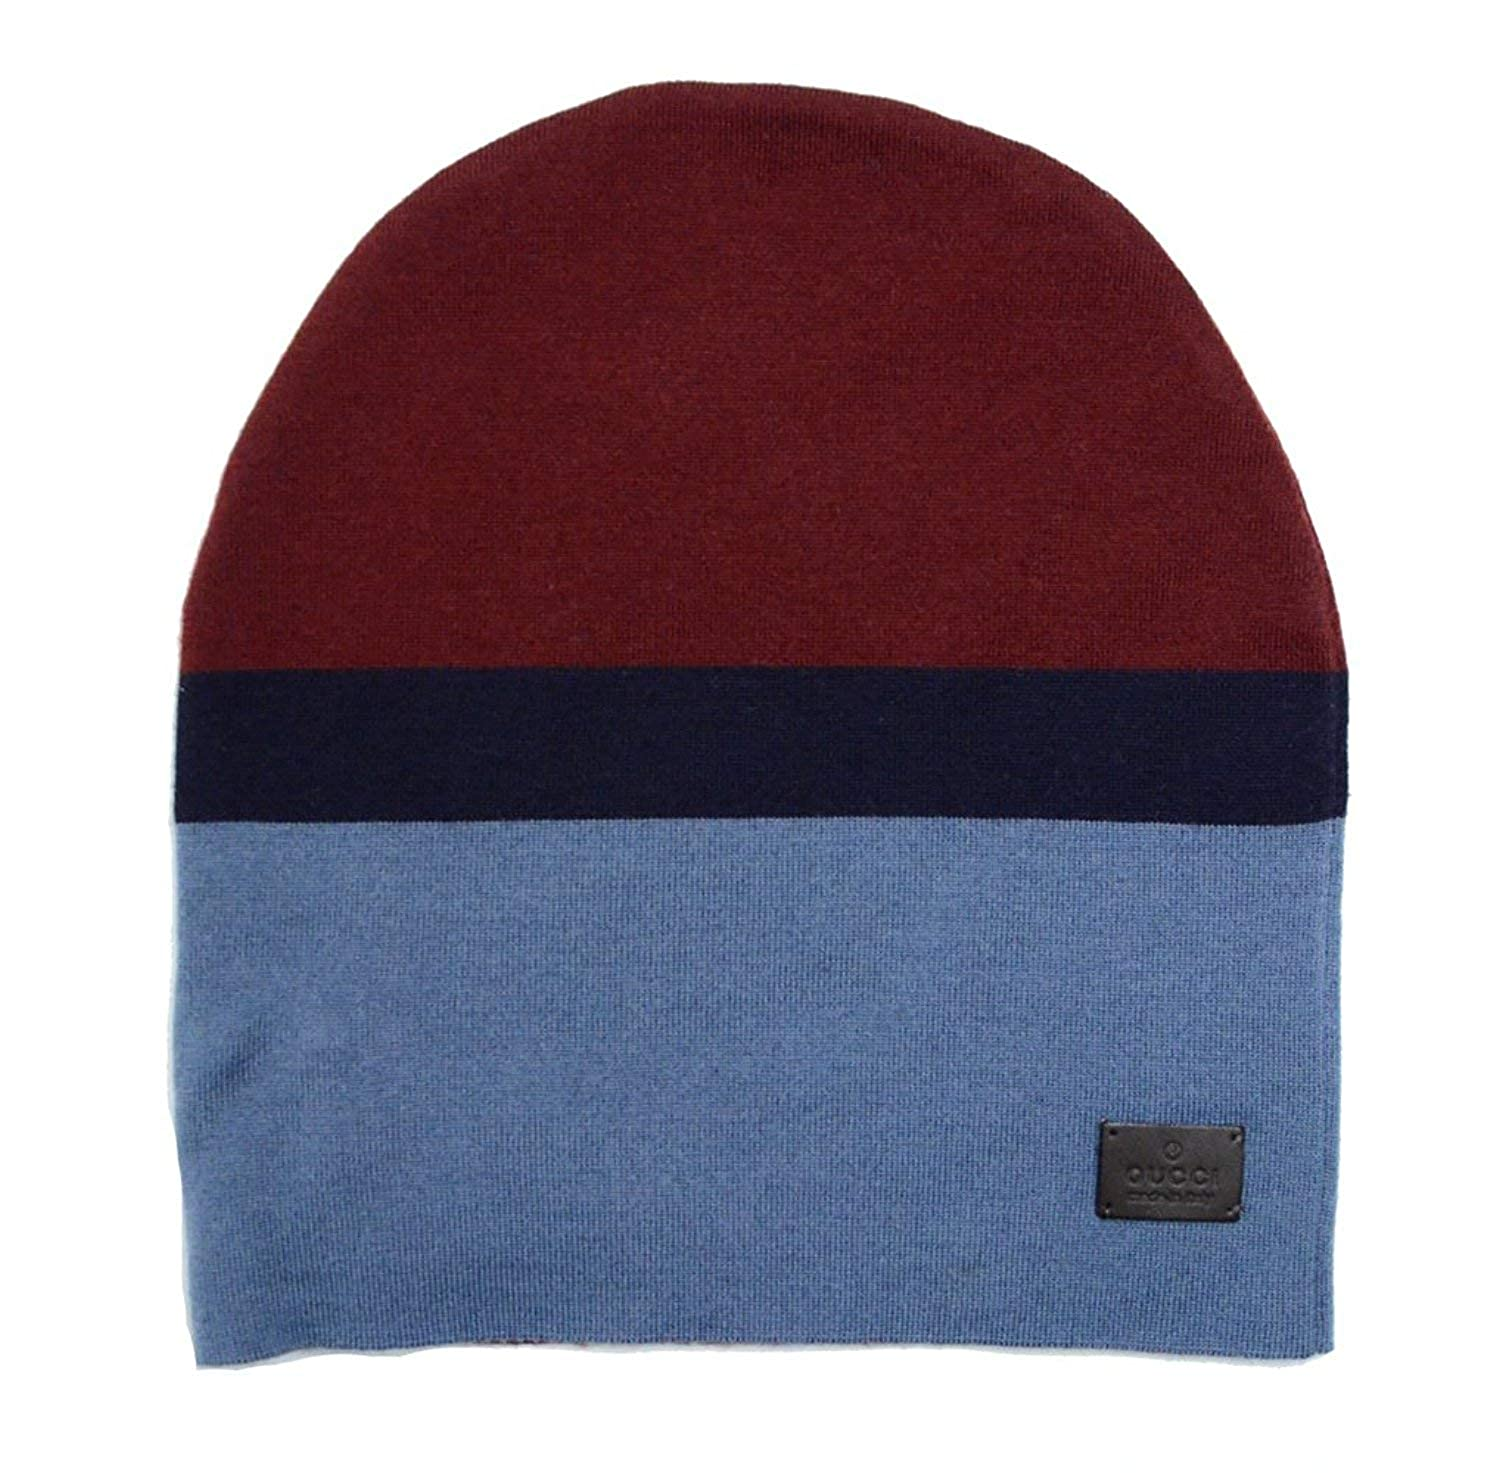 0ead5dcf9 Amazon.com: Gucci Unisex Burgundy Blue Wool Beanie Hat 353999 6068 ...